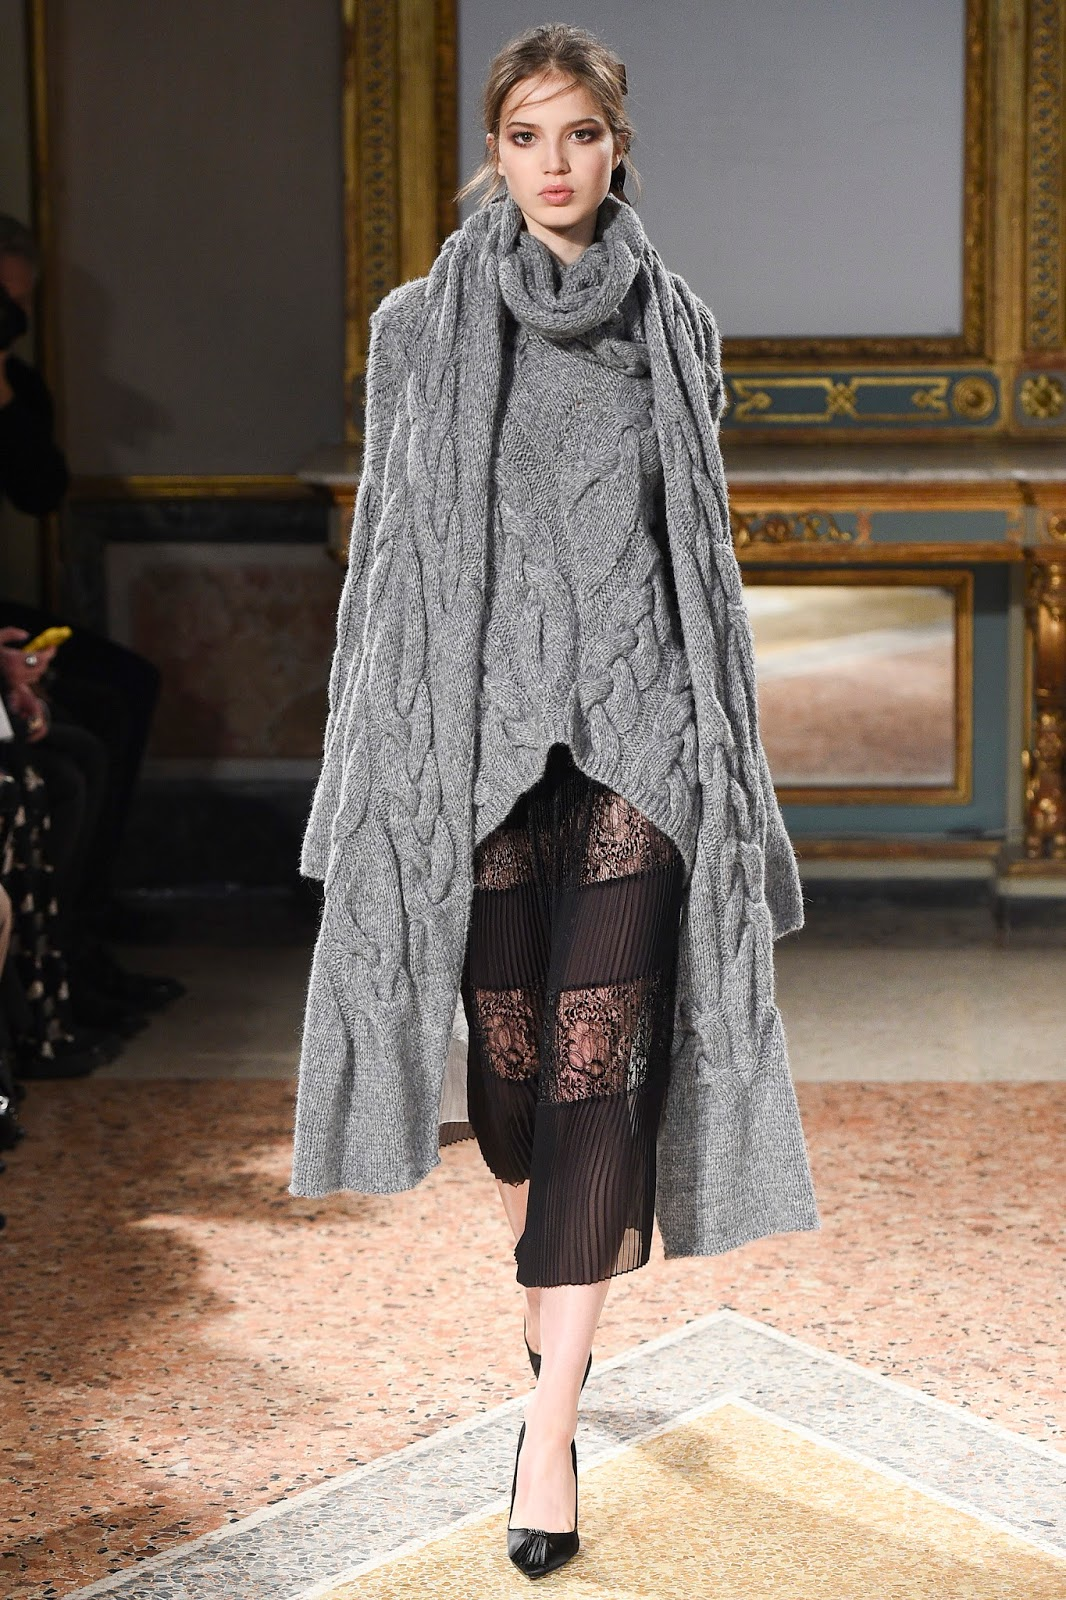 A new way to how to wear a scarf inspired by Fall/Winter 2016 collections - follow examples of Missoni, Bottega Veneta, Les Copains & Etro and embrace one of the autumn 2016 trends now. Via www.fashionedbylove.co.uk